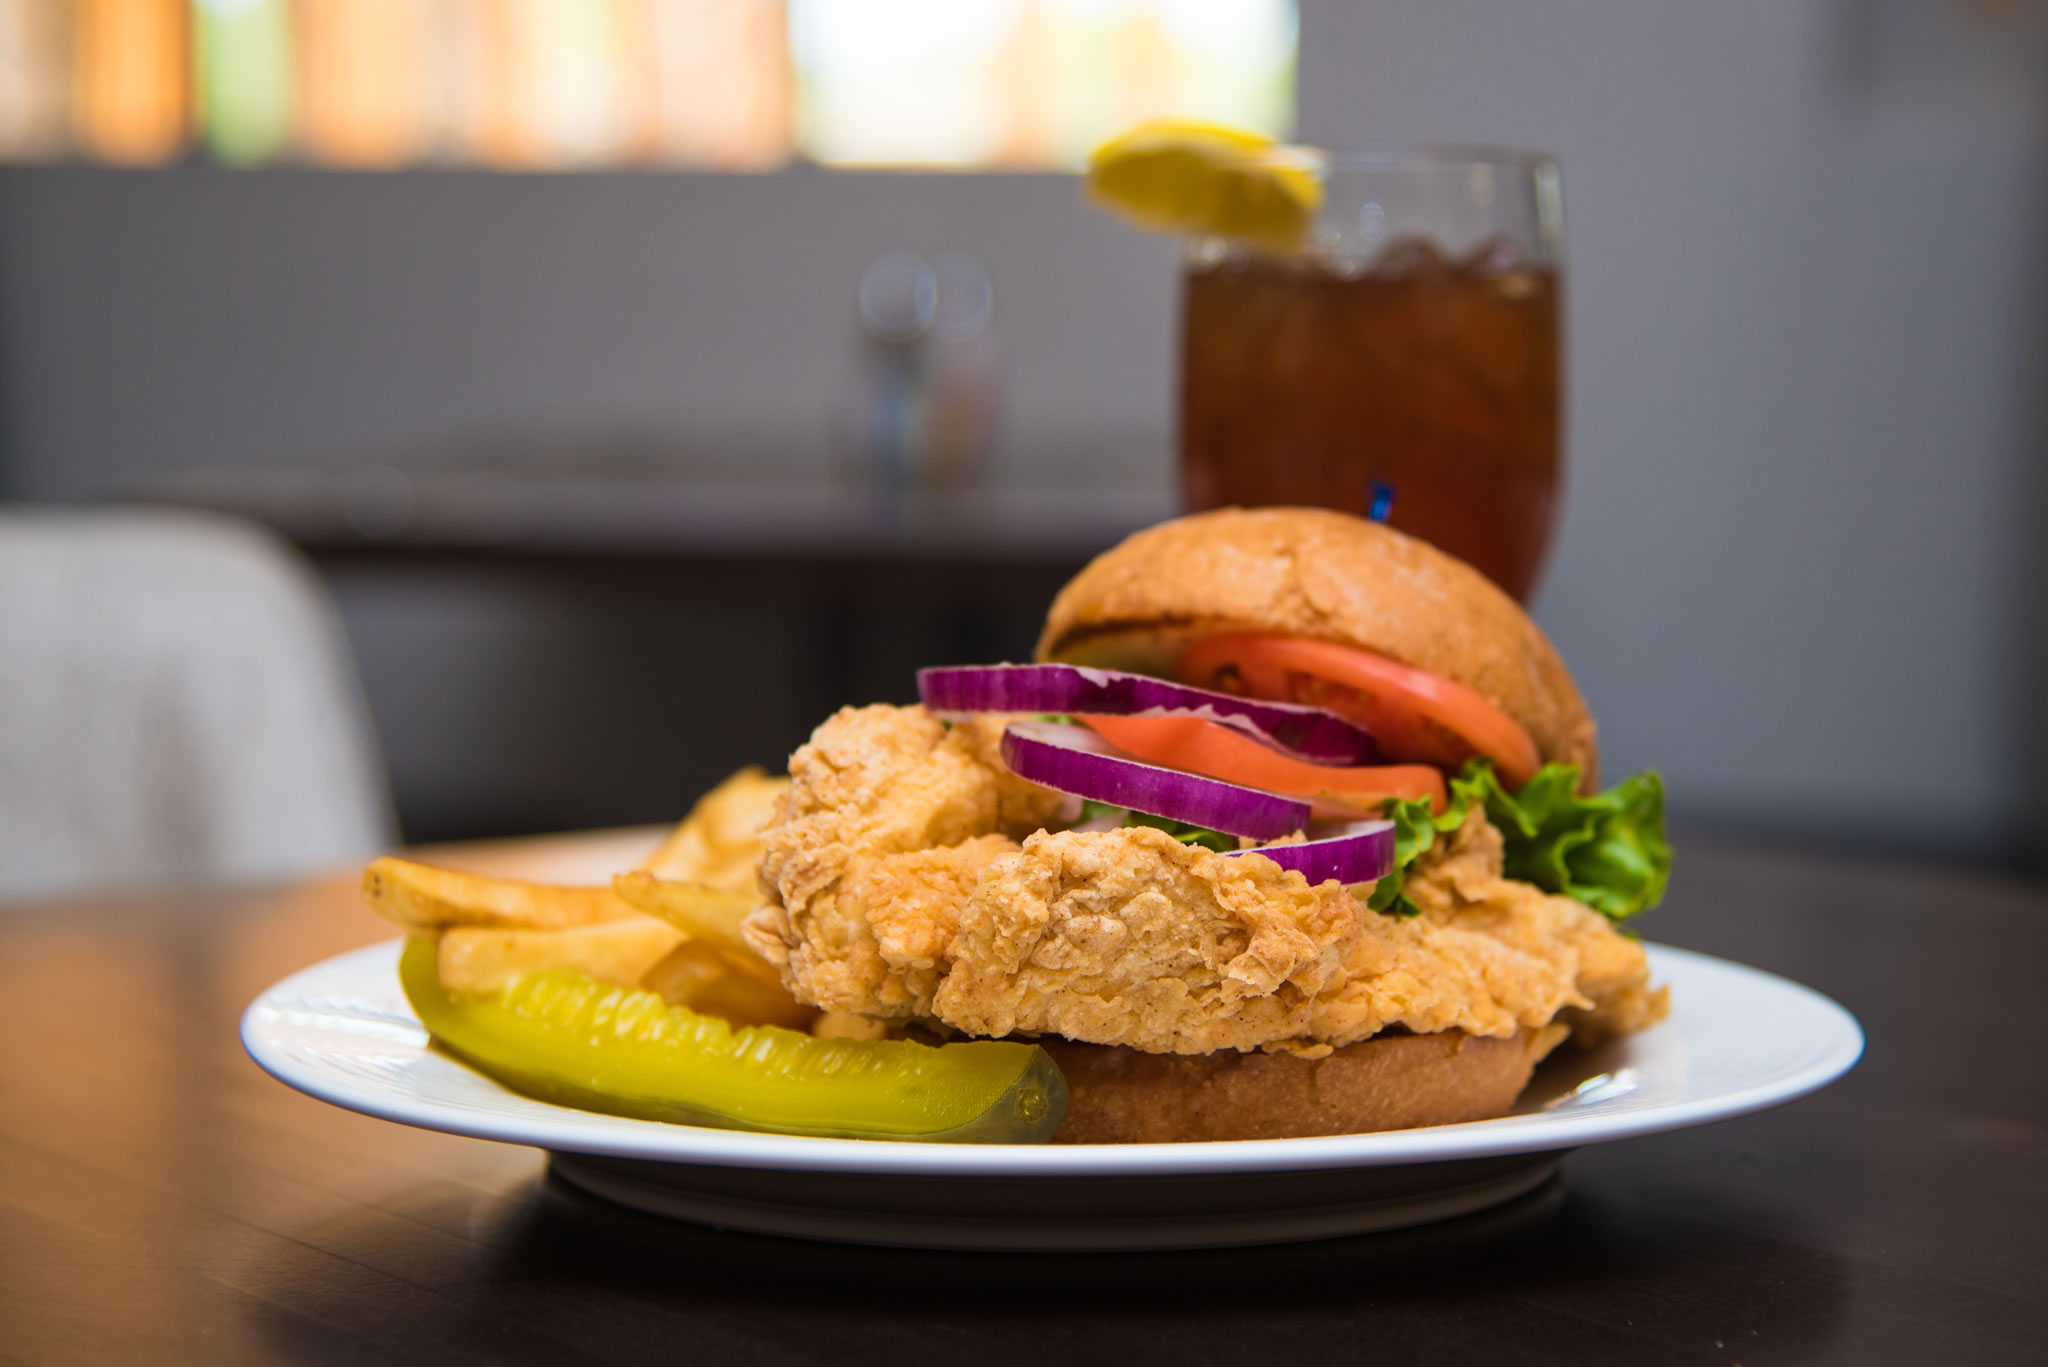 Grilled or Fried Chicken Sandwich